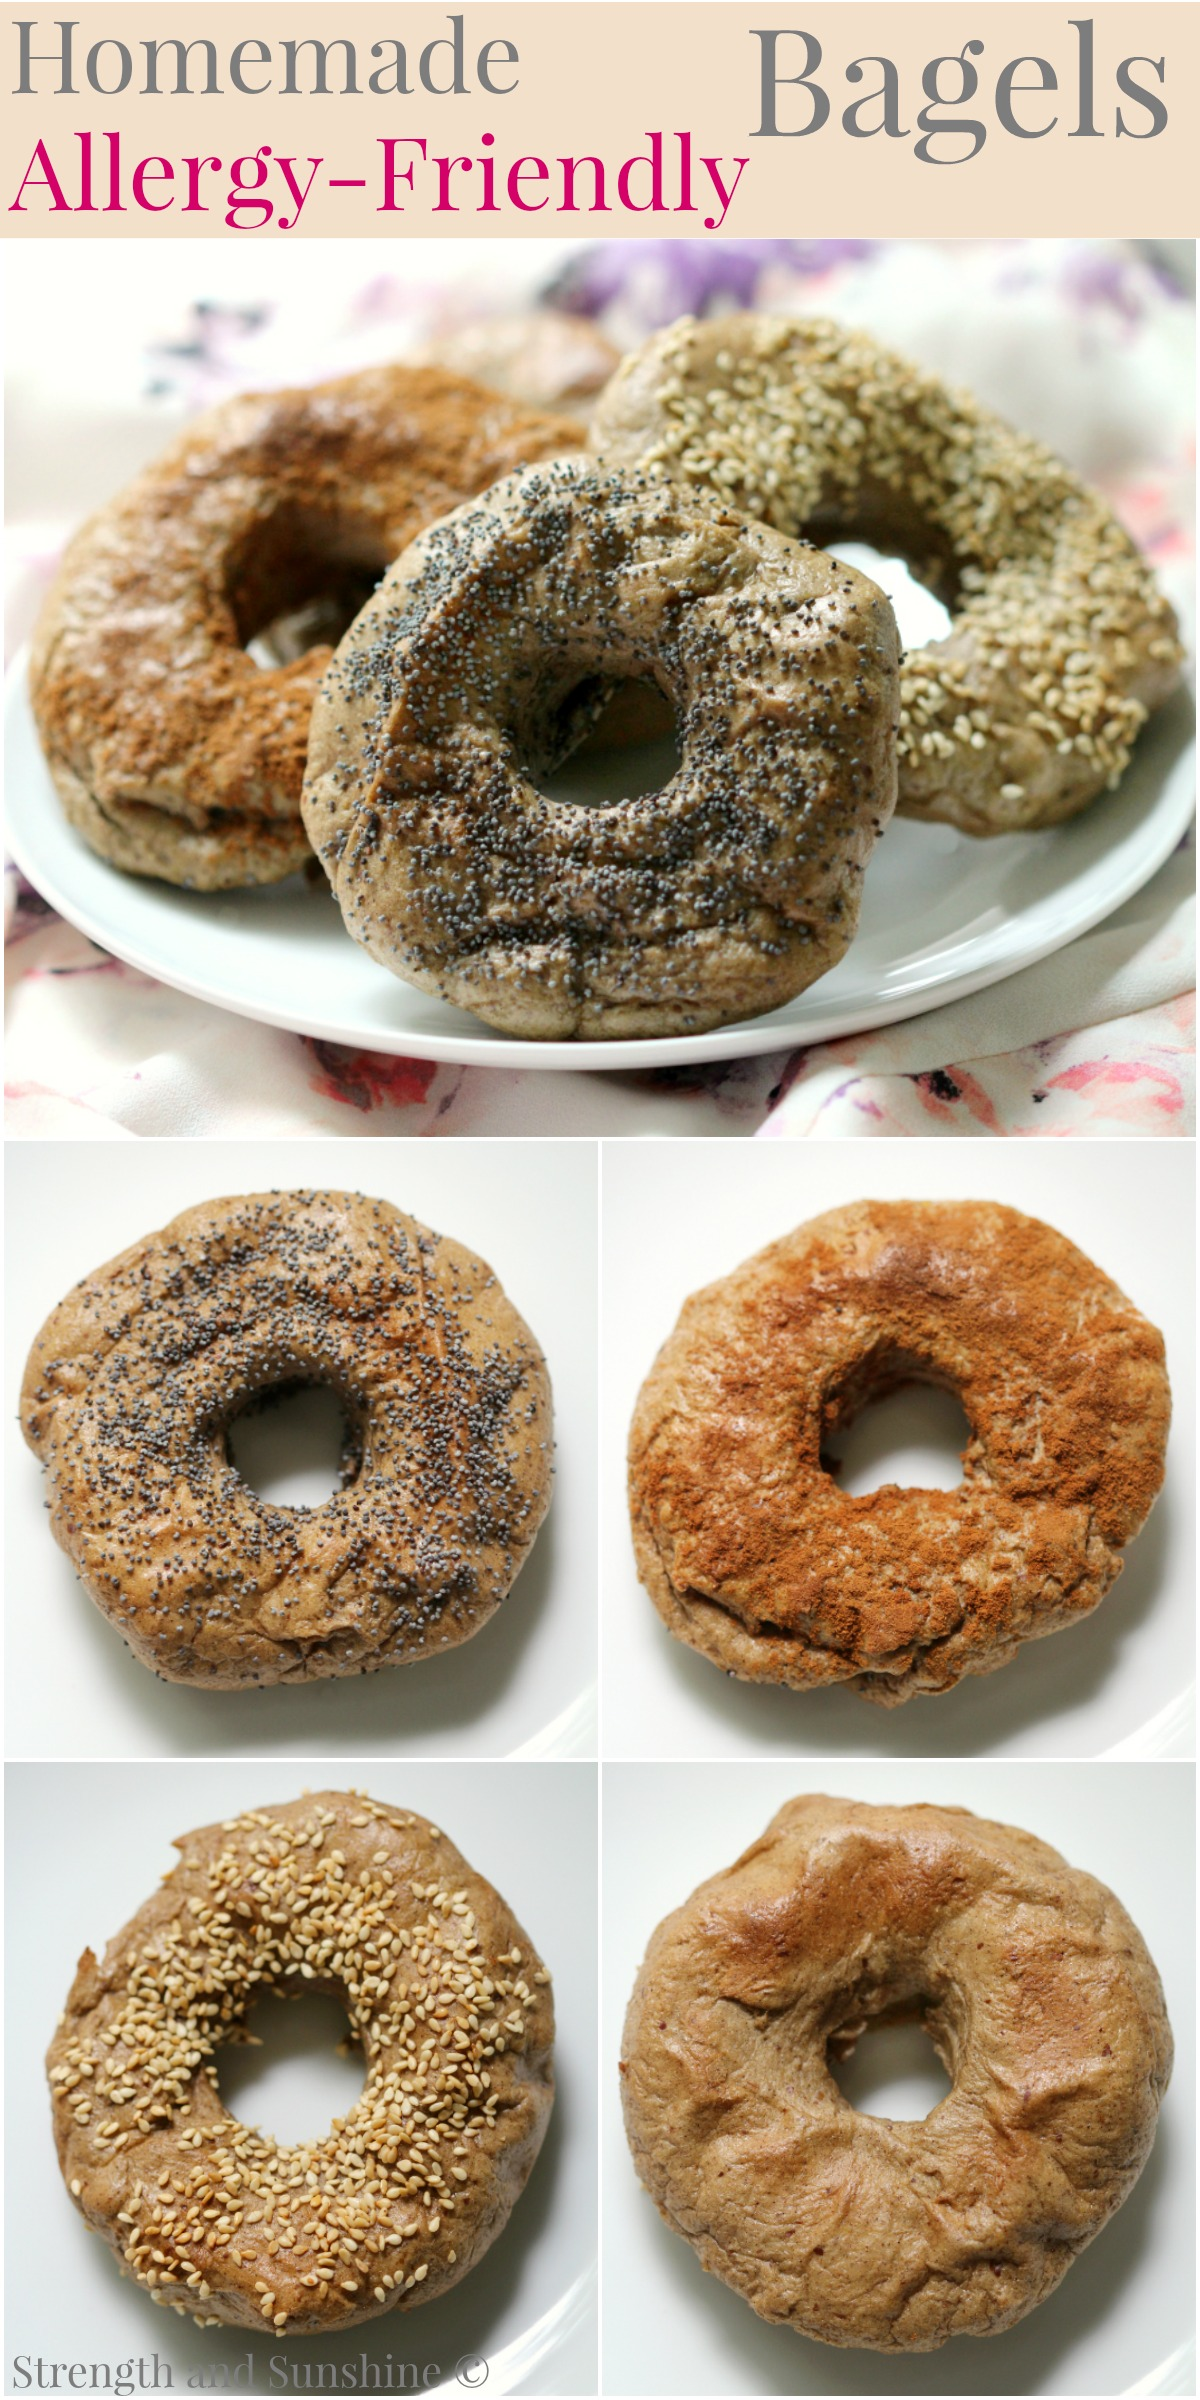 Homemade Allergy-Friendly Bagels | Strength and Sunshine @RebeccaGF666 Fresh from the oven, homemade allergy-friendly bagels for everyone! Gluten-free, nut-free, dairy-free, egg-free, soy-free, vegan, a simple recipe for the classic and favorite breakfast carb! Choose your topping and flavors for a special journey!